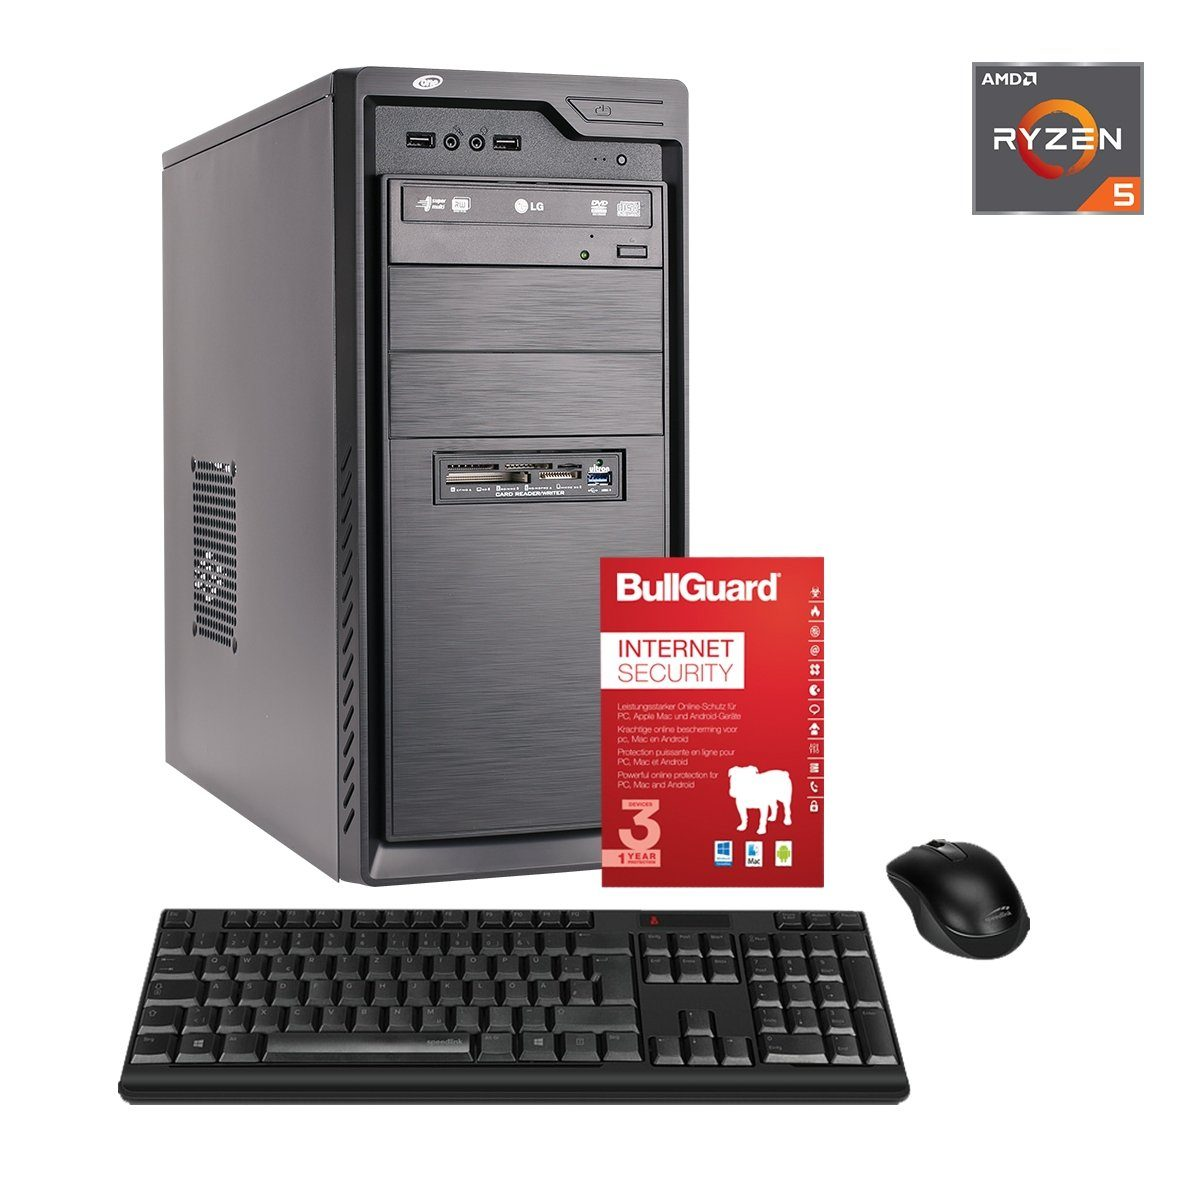 ONE PC, Ryzen 5 2400G, Radeon RX Vega 11 Graphics, 8GB DDR4 RAM »Office PC 44694«